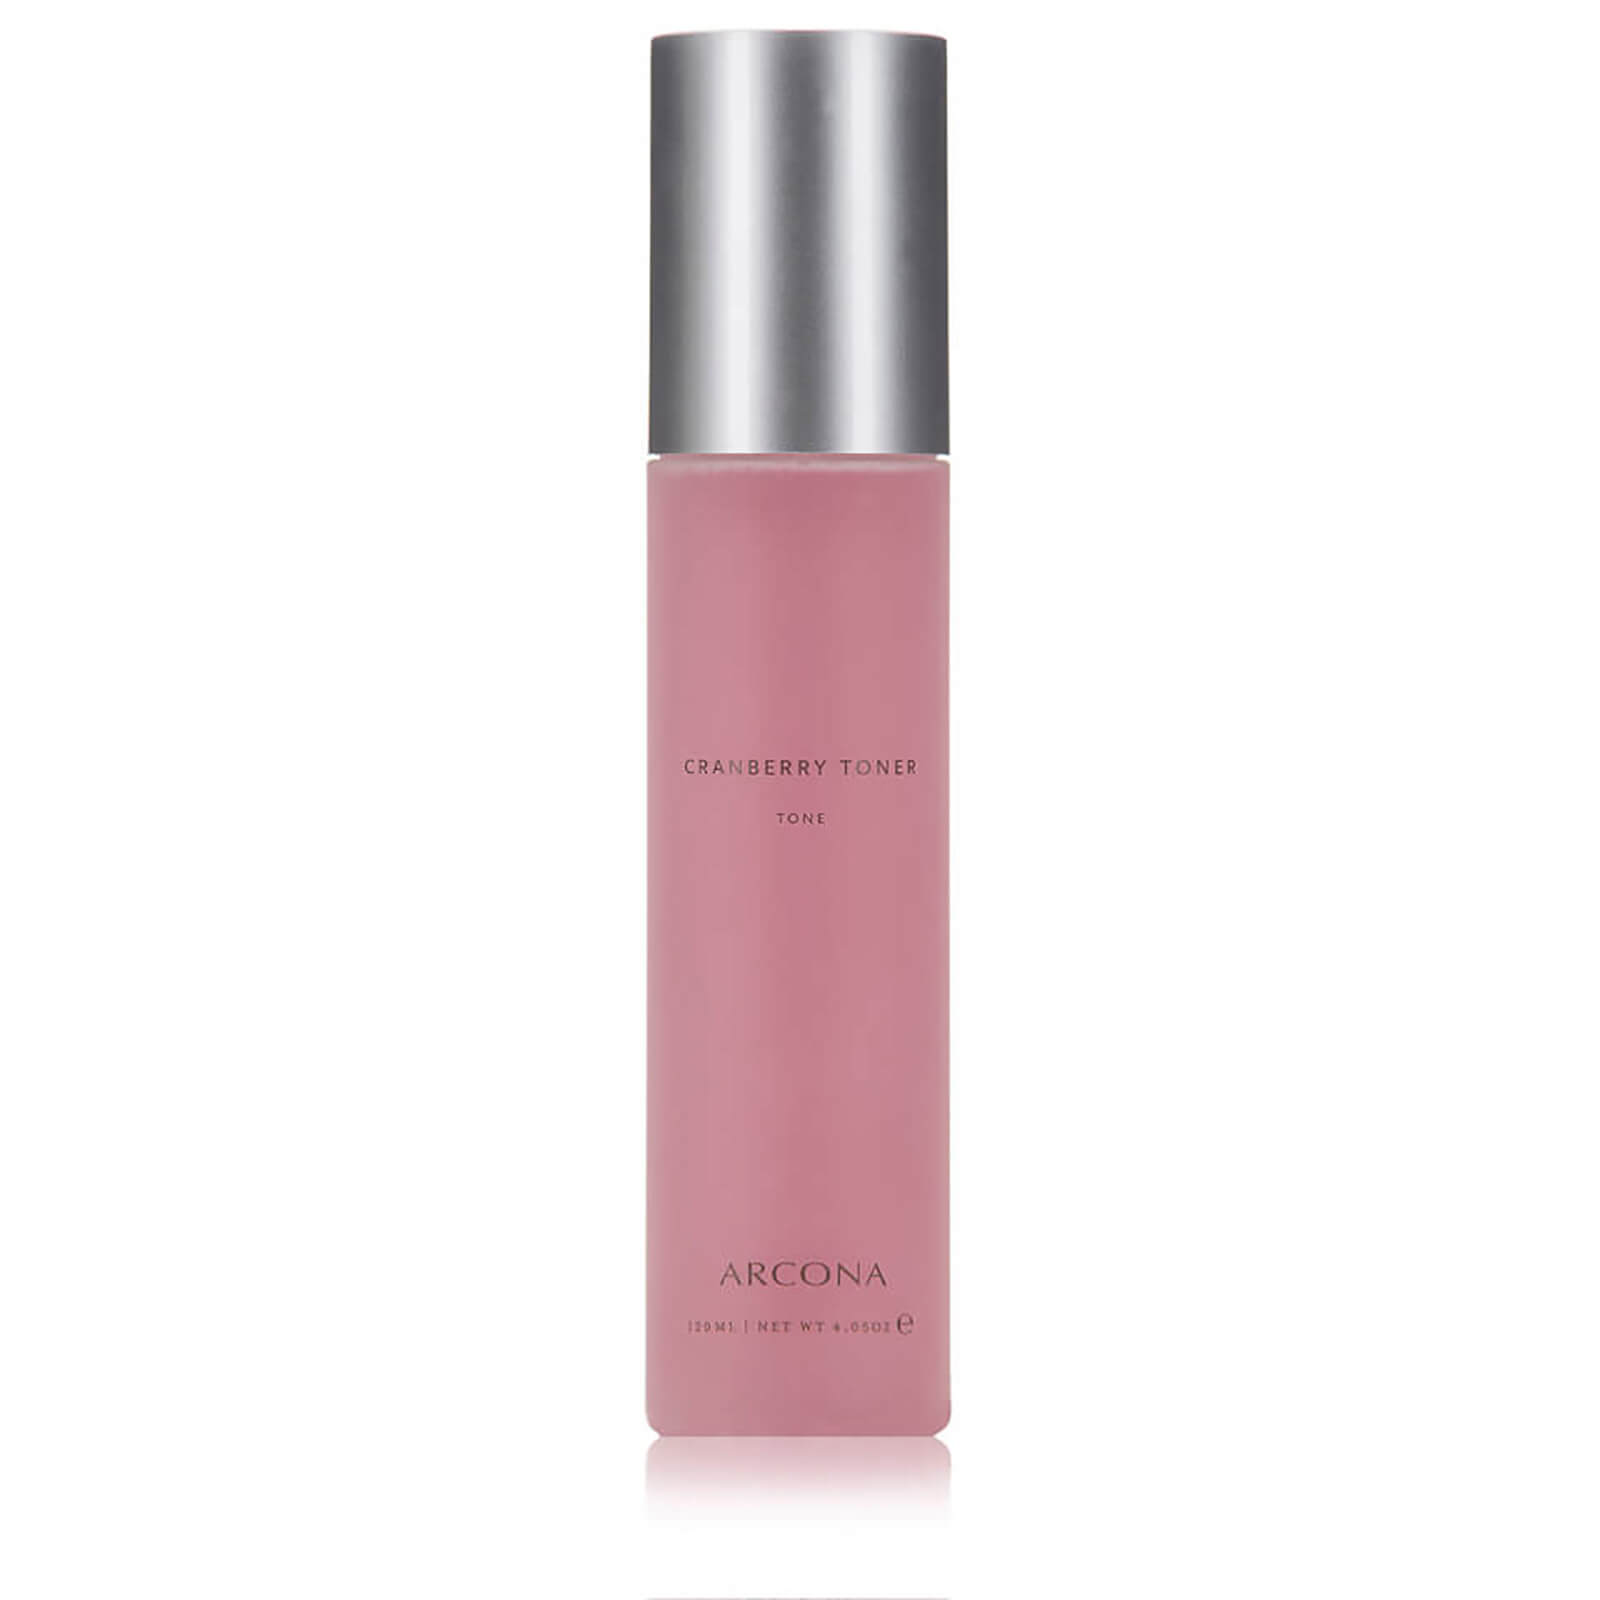 Watch a story about ARCONA CRANBERRY TONER 4.05OZ